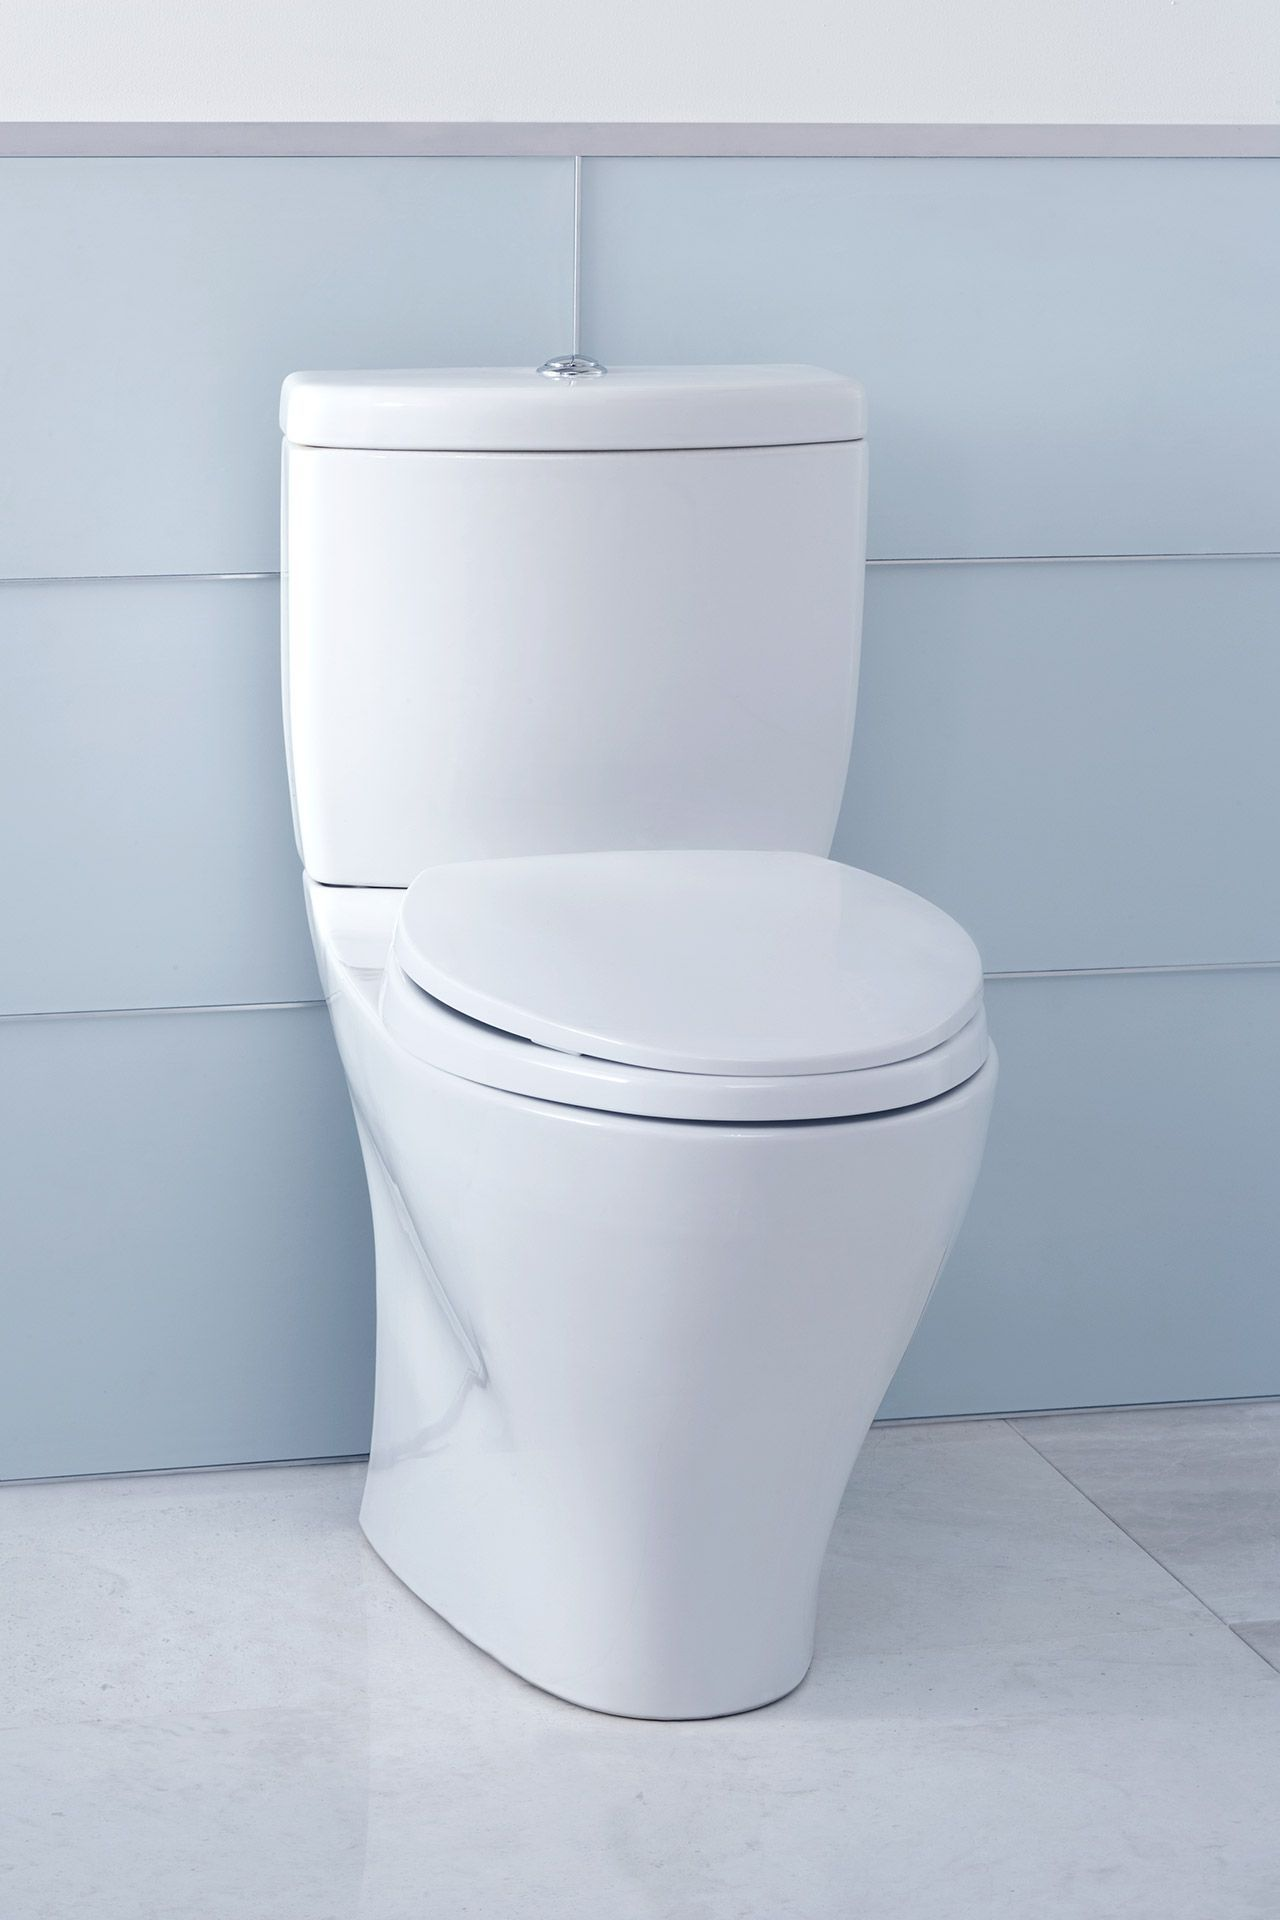 New | Home Depot toilets American Standard Champion | Insured By Ross